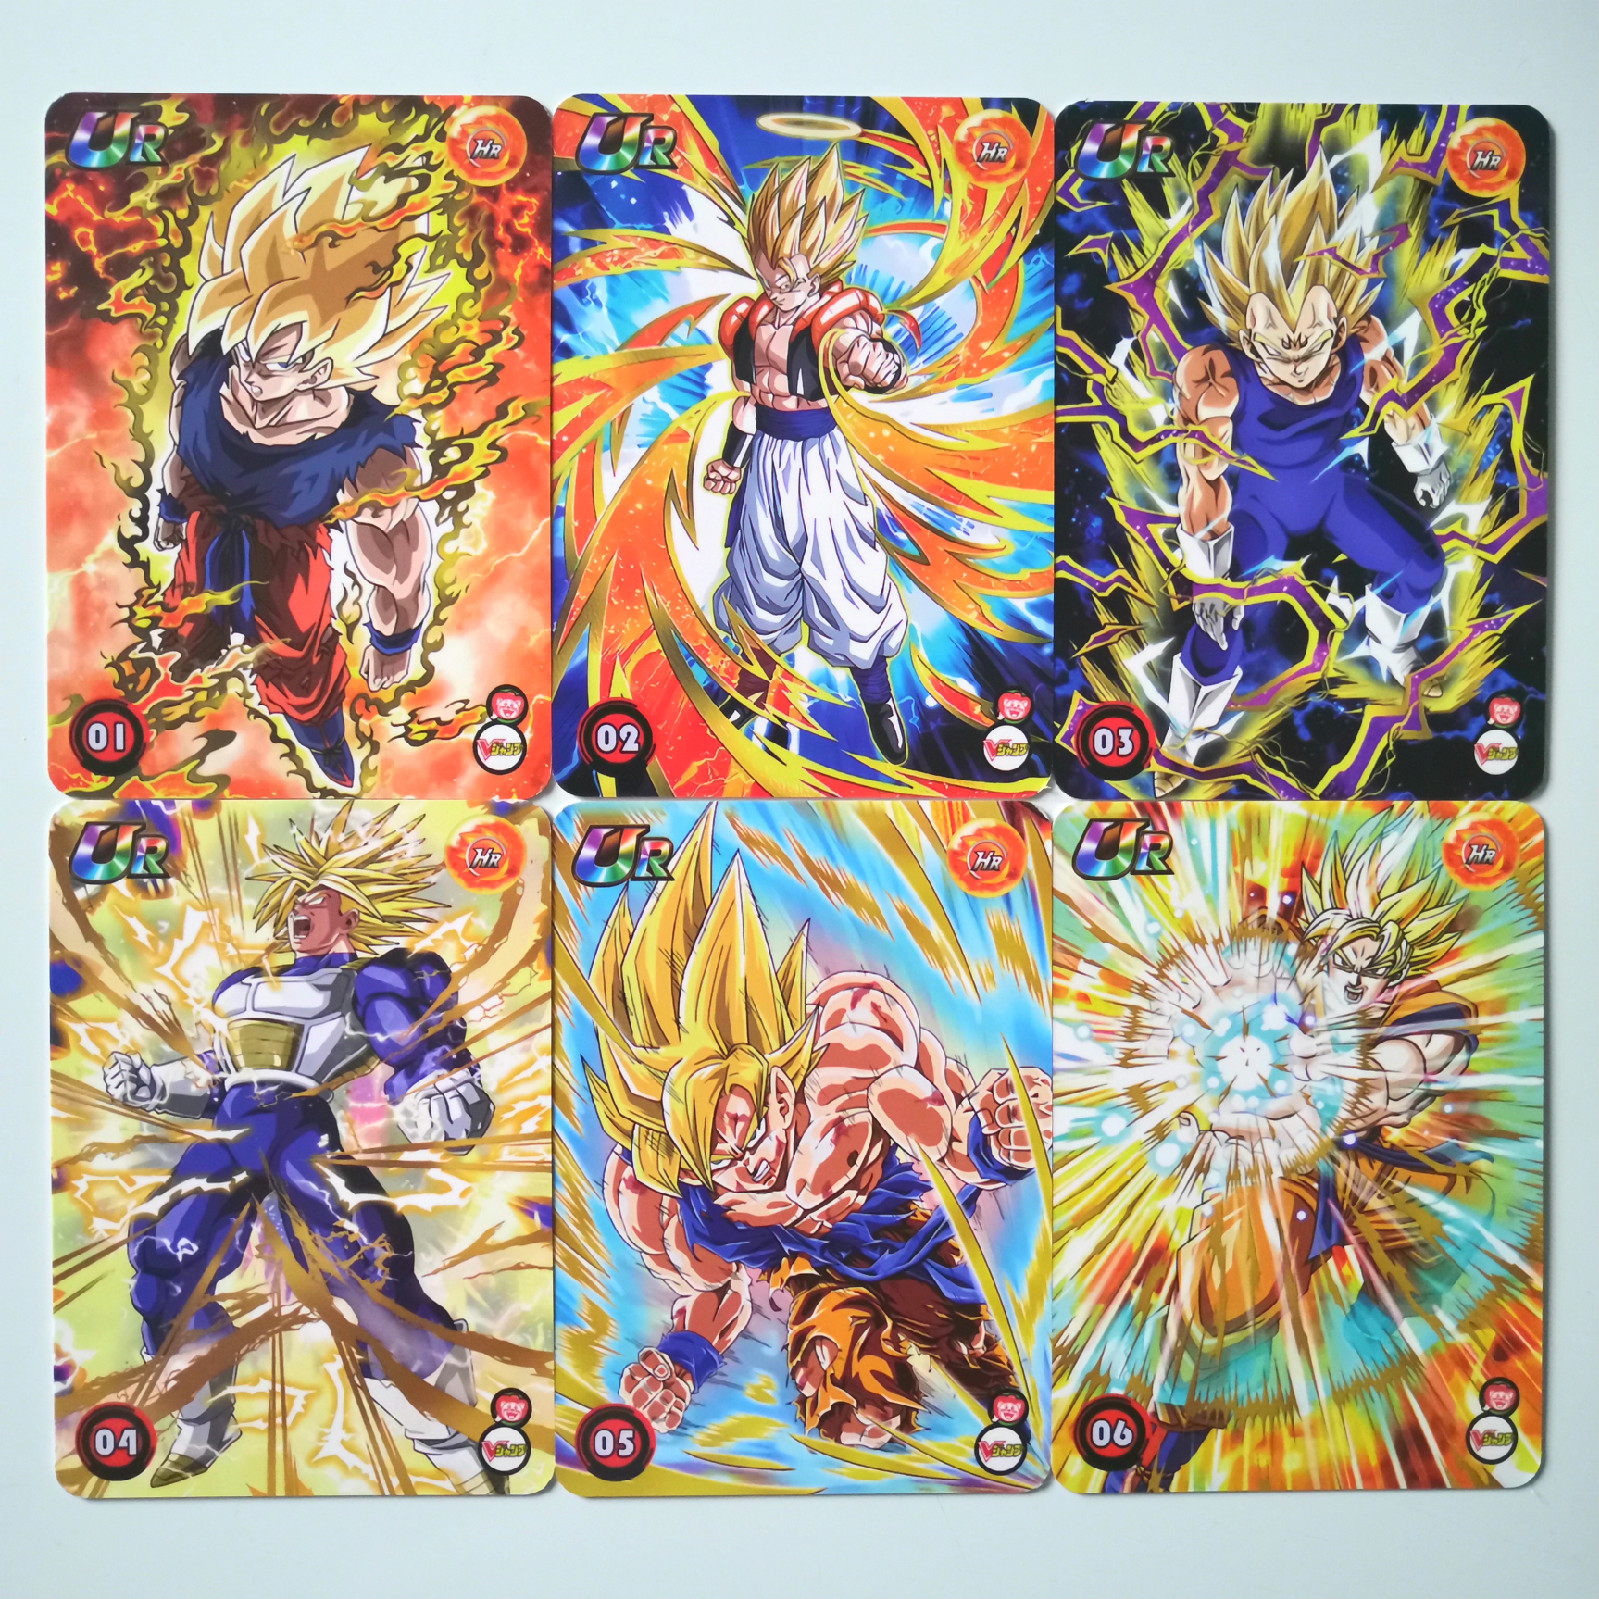 64pcs/set Super Dragon Ball Z Heroes Battle Regular Card Ultra Instinct Goku Vegeta Game Collection Cards